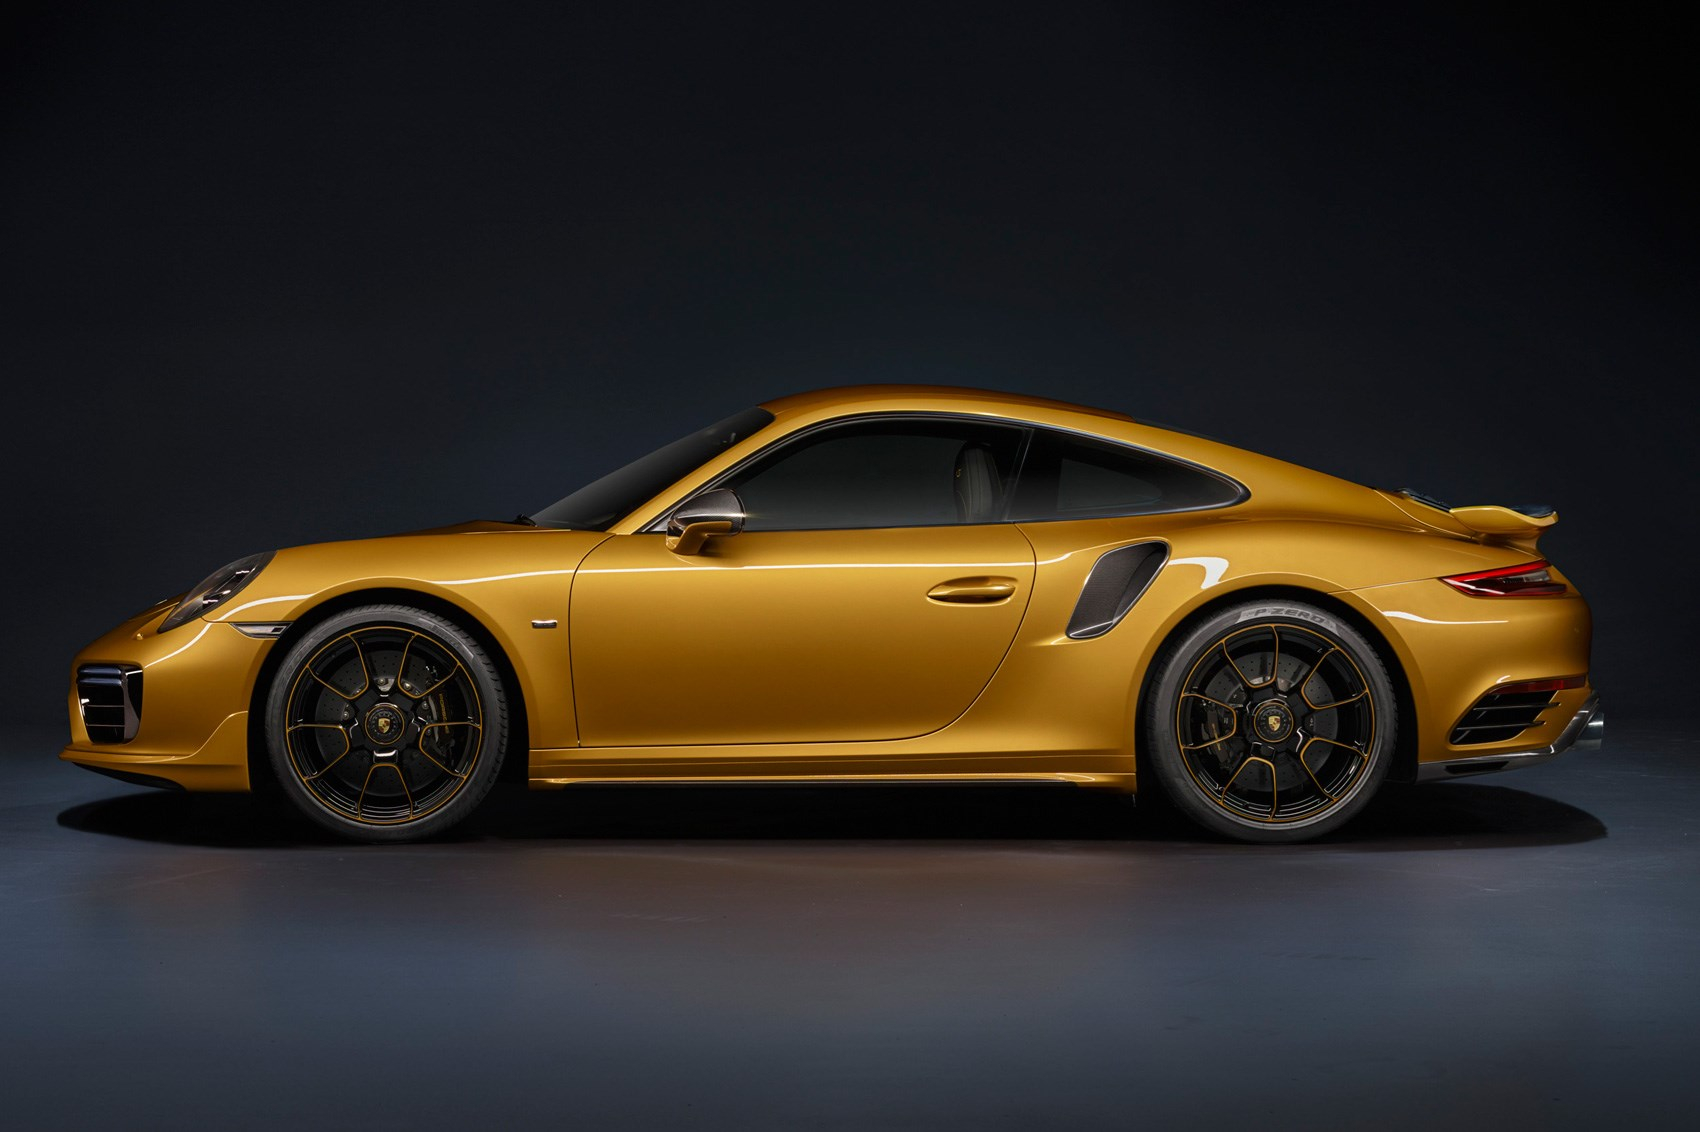 porsche 911 turbo s exclusive series the most powerful. Black Bedroom Furniture Sets. Home Design Ideas